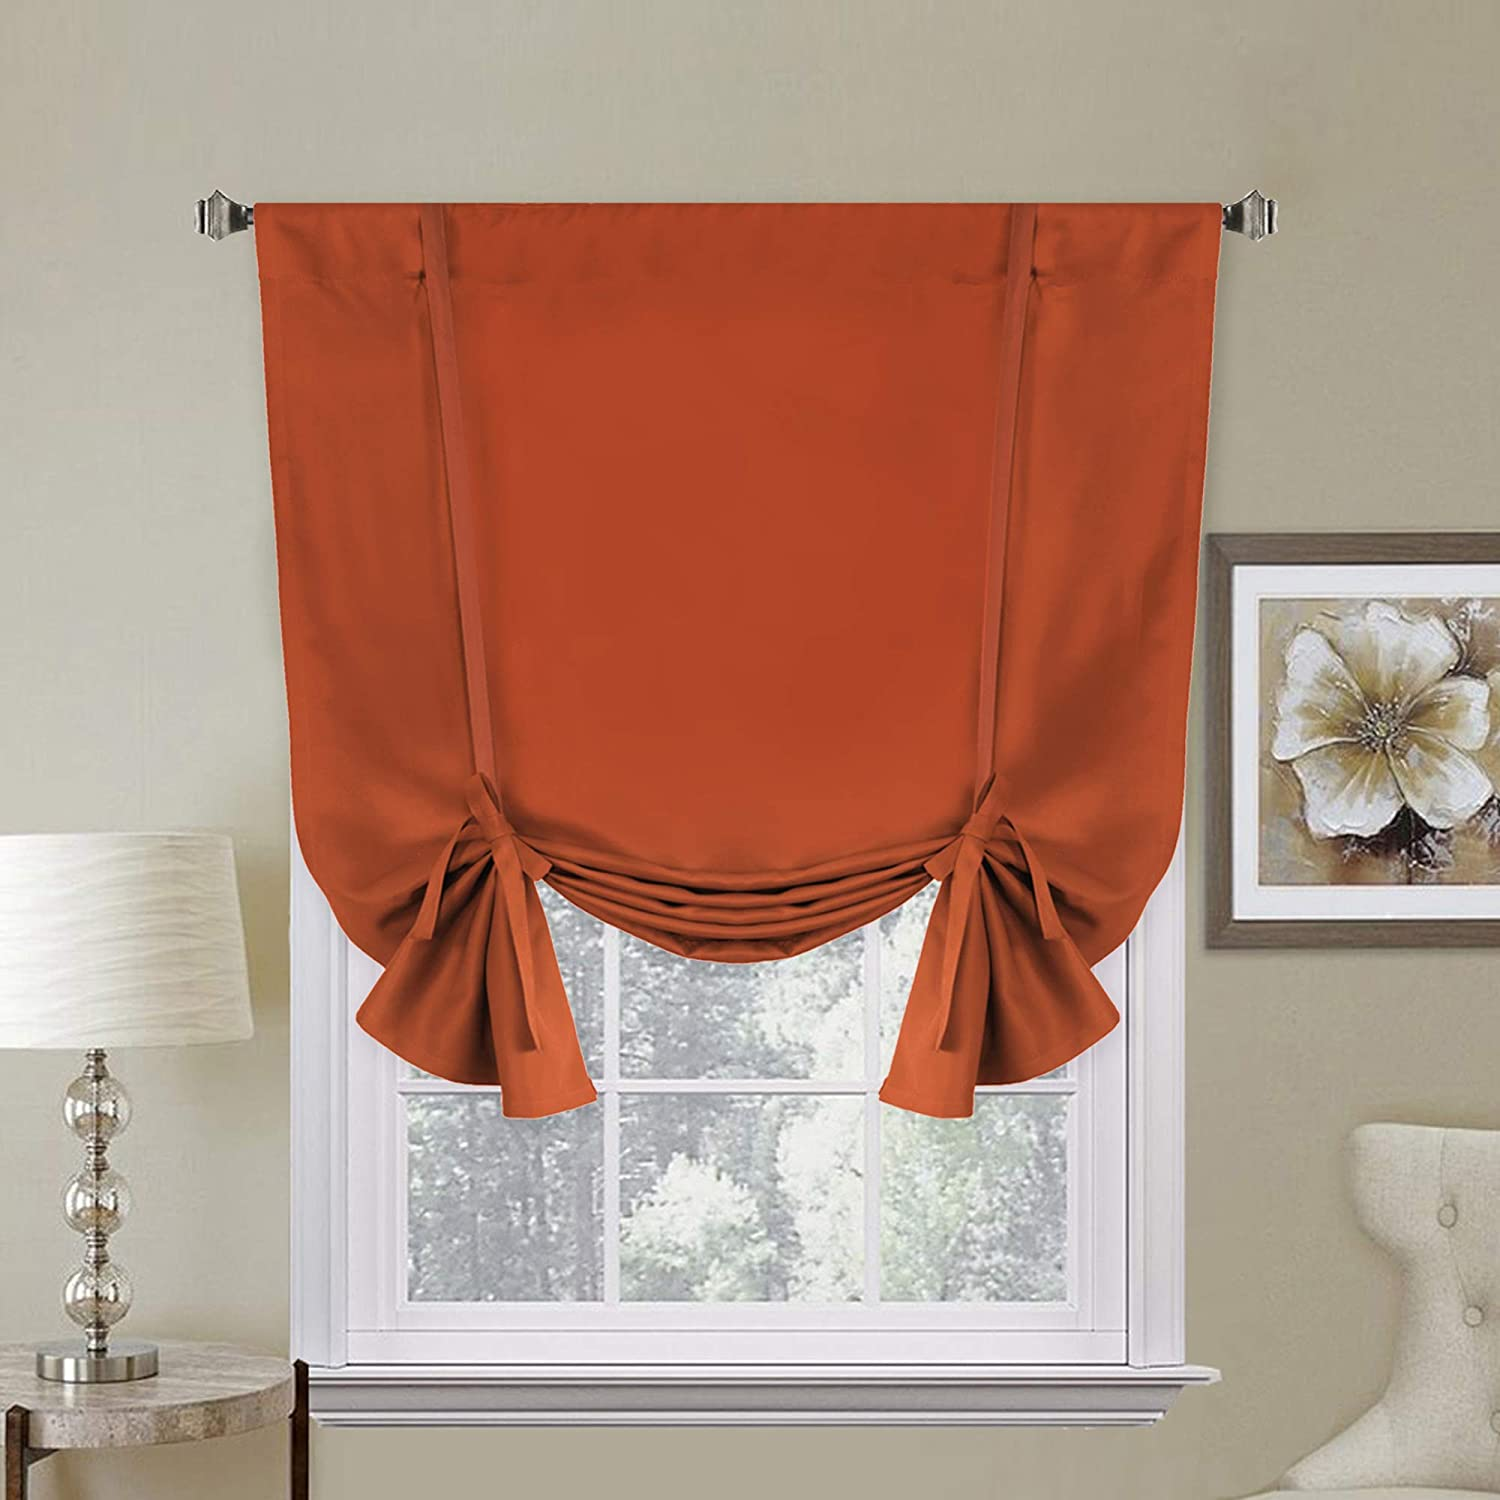 H.Versailtex Thermal Insulated Blackout Curtain, Adjustable Tie Up Shade (Rod Pocket Panel for Small Window) - 42